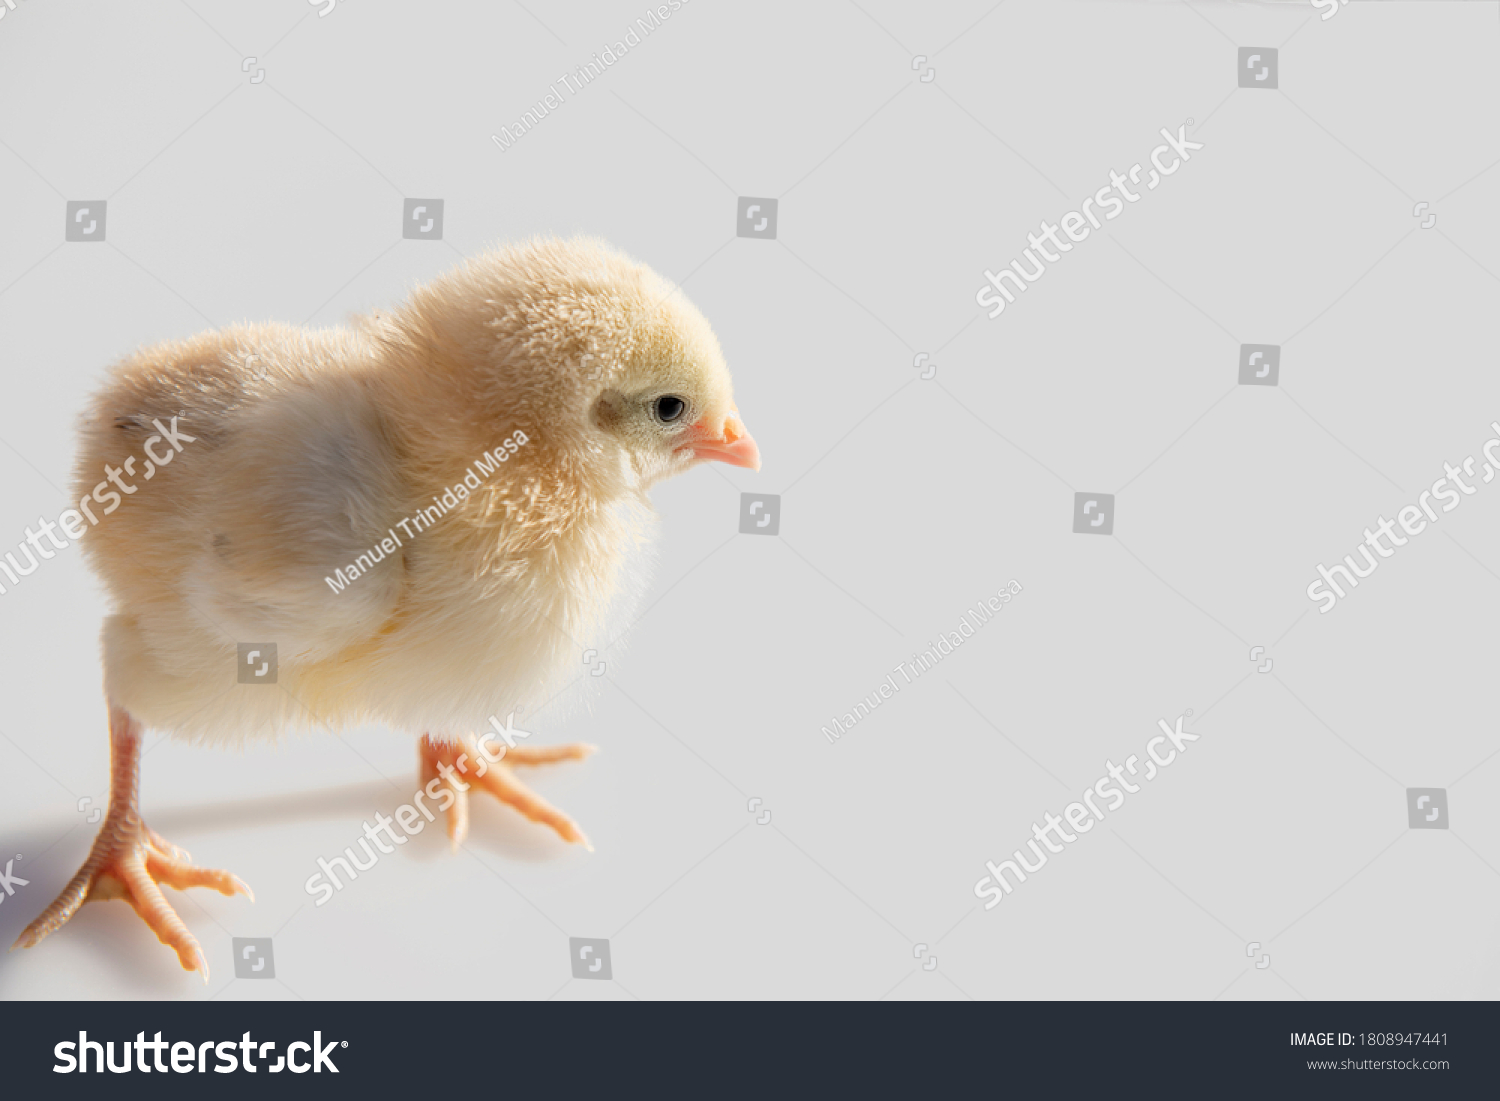 stock-photo-chick-only-a-few-days-old-is